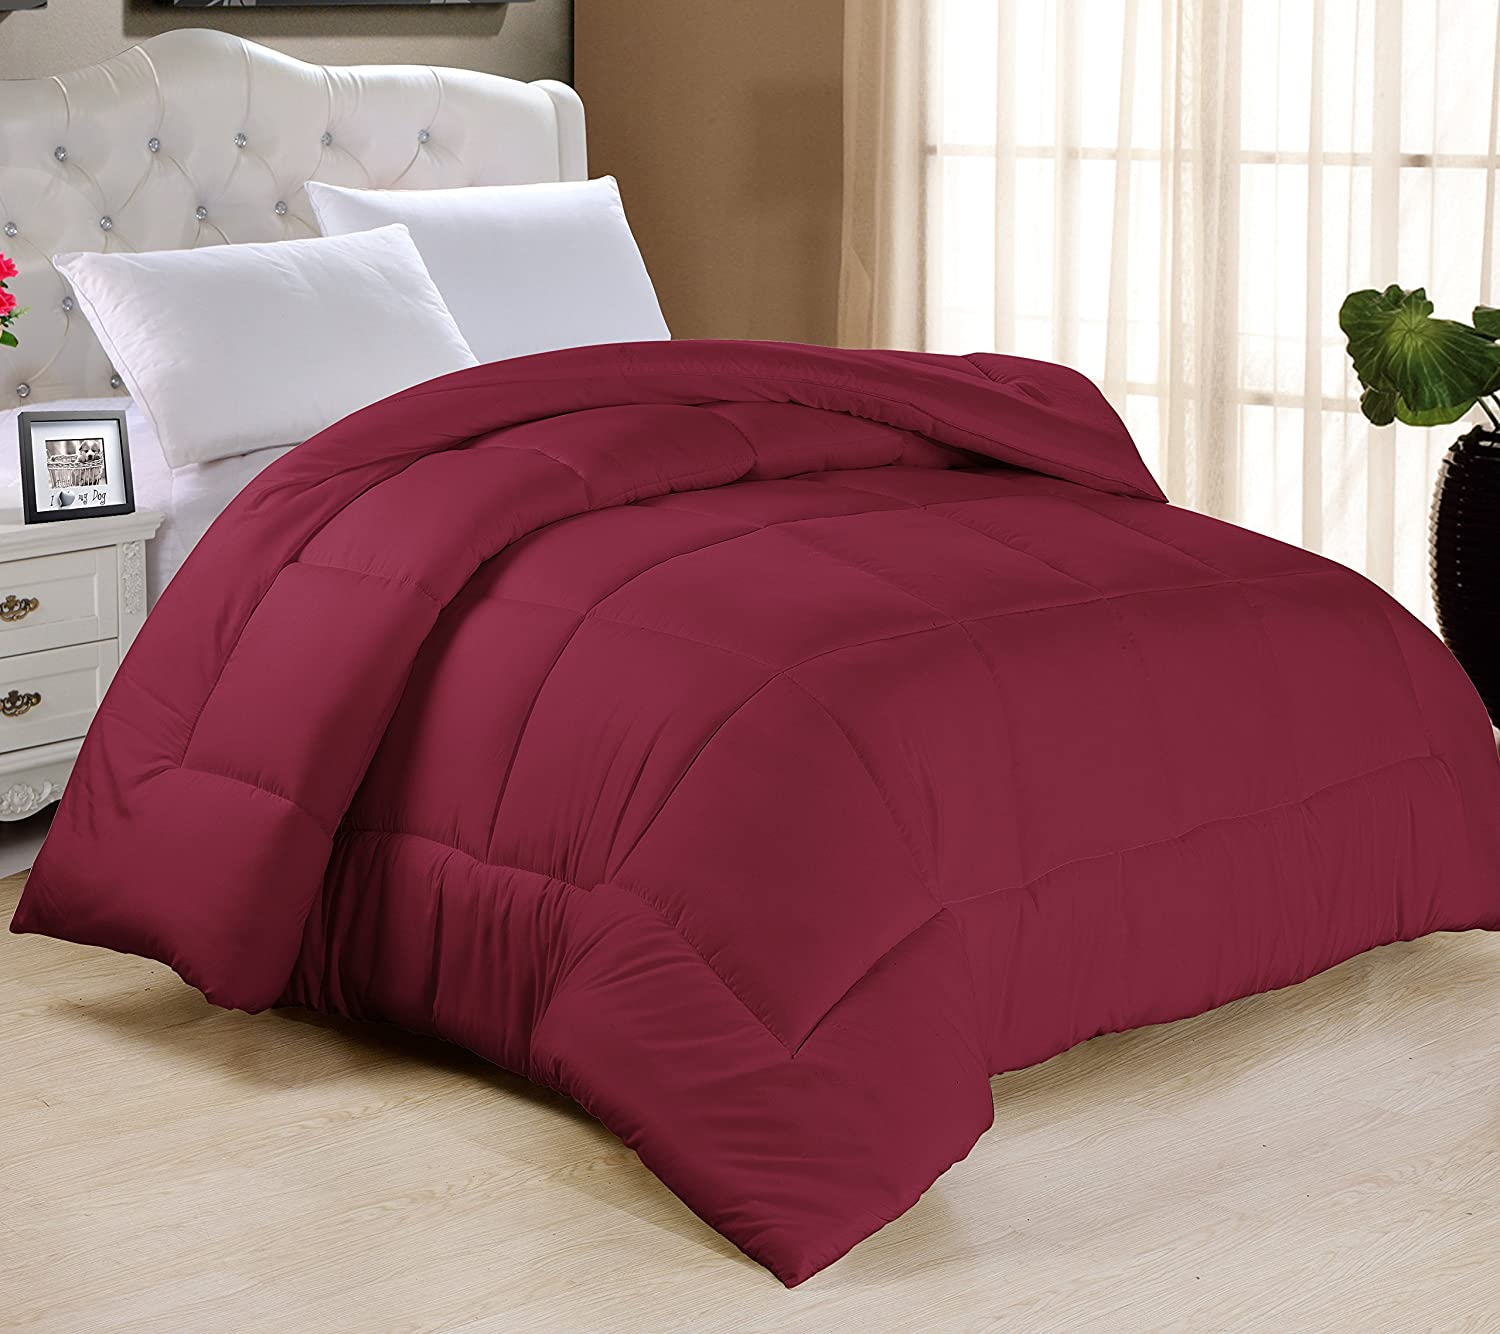 best core duvets comforter withs goose feather white siberian down green microsuede seasons pillows alternative summer bedroom size heavy royal head of fluffy pillow comforters duvet for power oversized on store blankets queen very full hungarian colored king insert fill sale